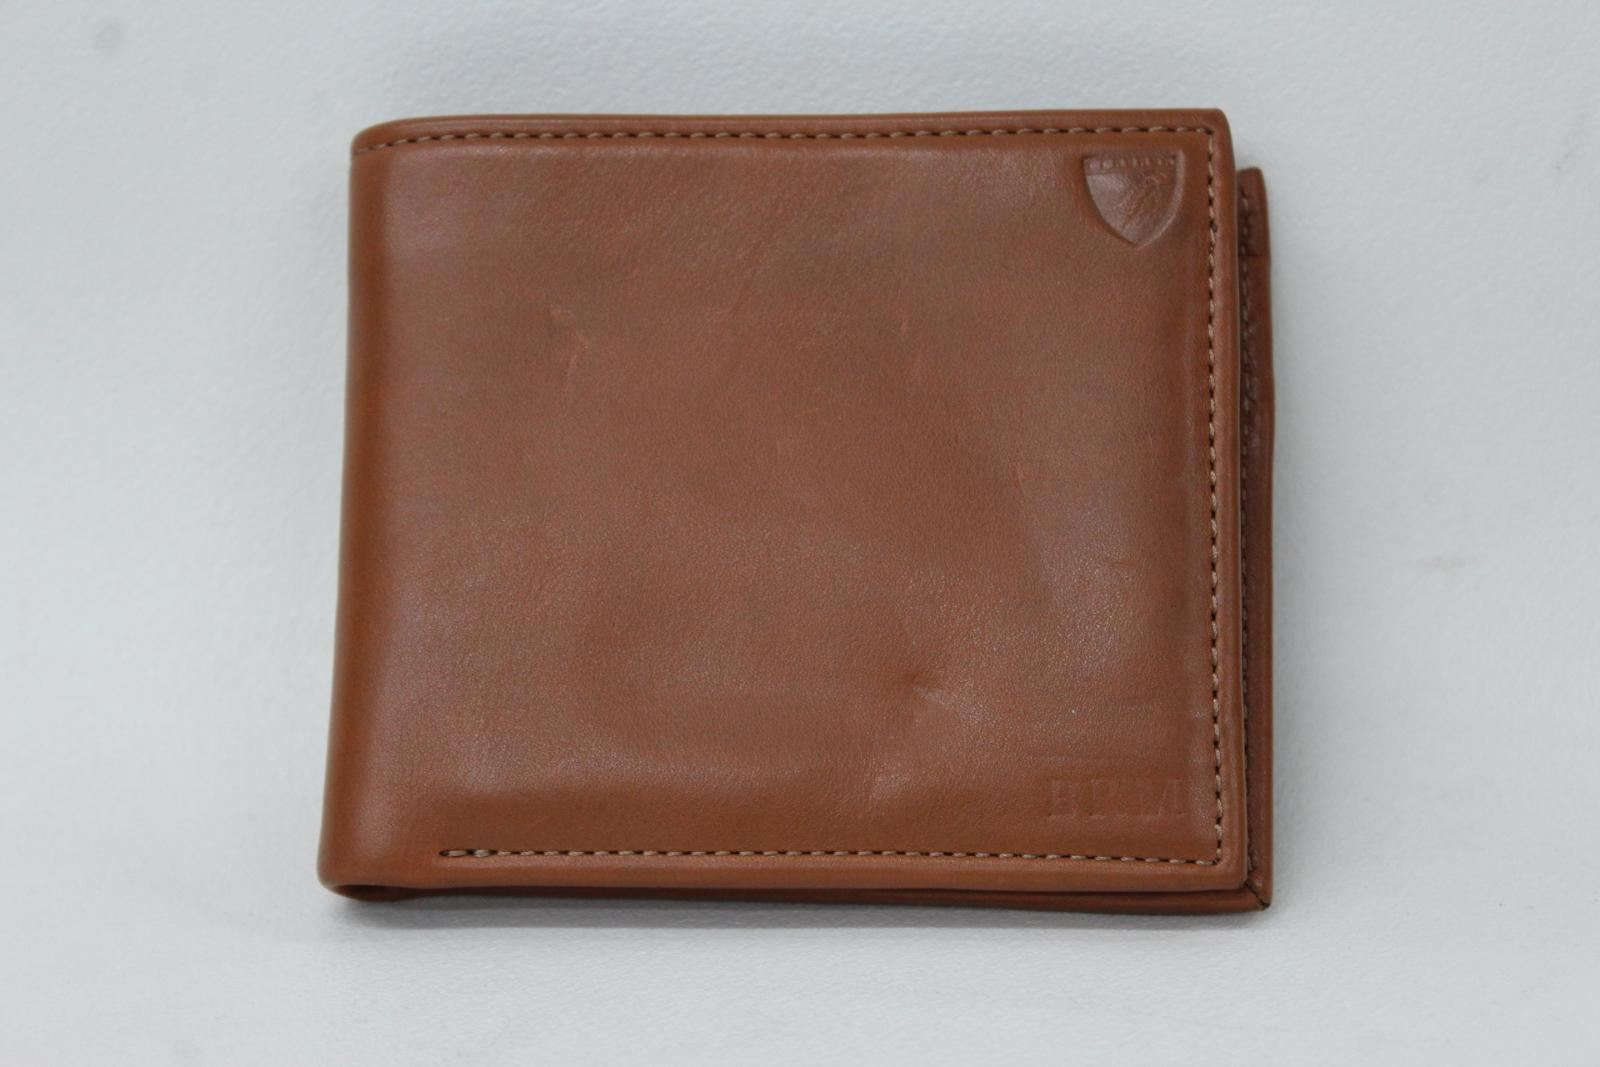 ASPINAL-OF-LONDON-Men-039-s-Tan-Brown-Smooth-Leather-BRM-Embossed-Bifold-Wallet-NEW